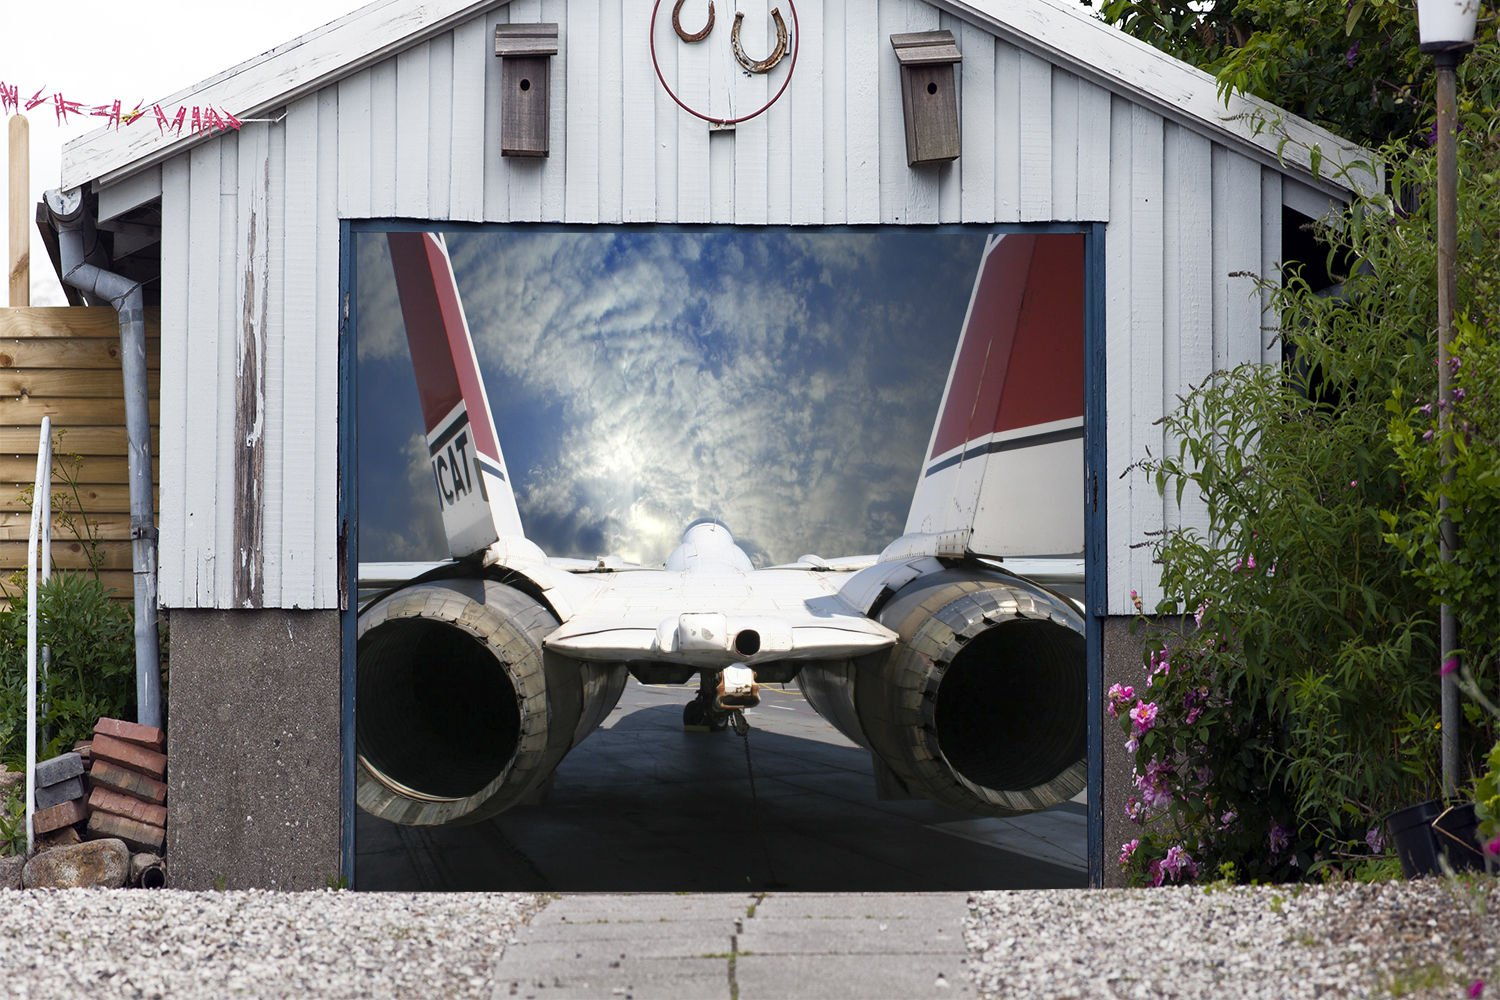 PLANE Banner Single Garage Door Covers Billboard Airplane Full Color 3D Effect Print Door Decor Garage Mural Made in the USA Size 83 x 96 inches DAV174